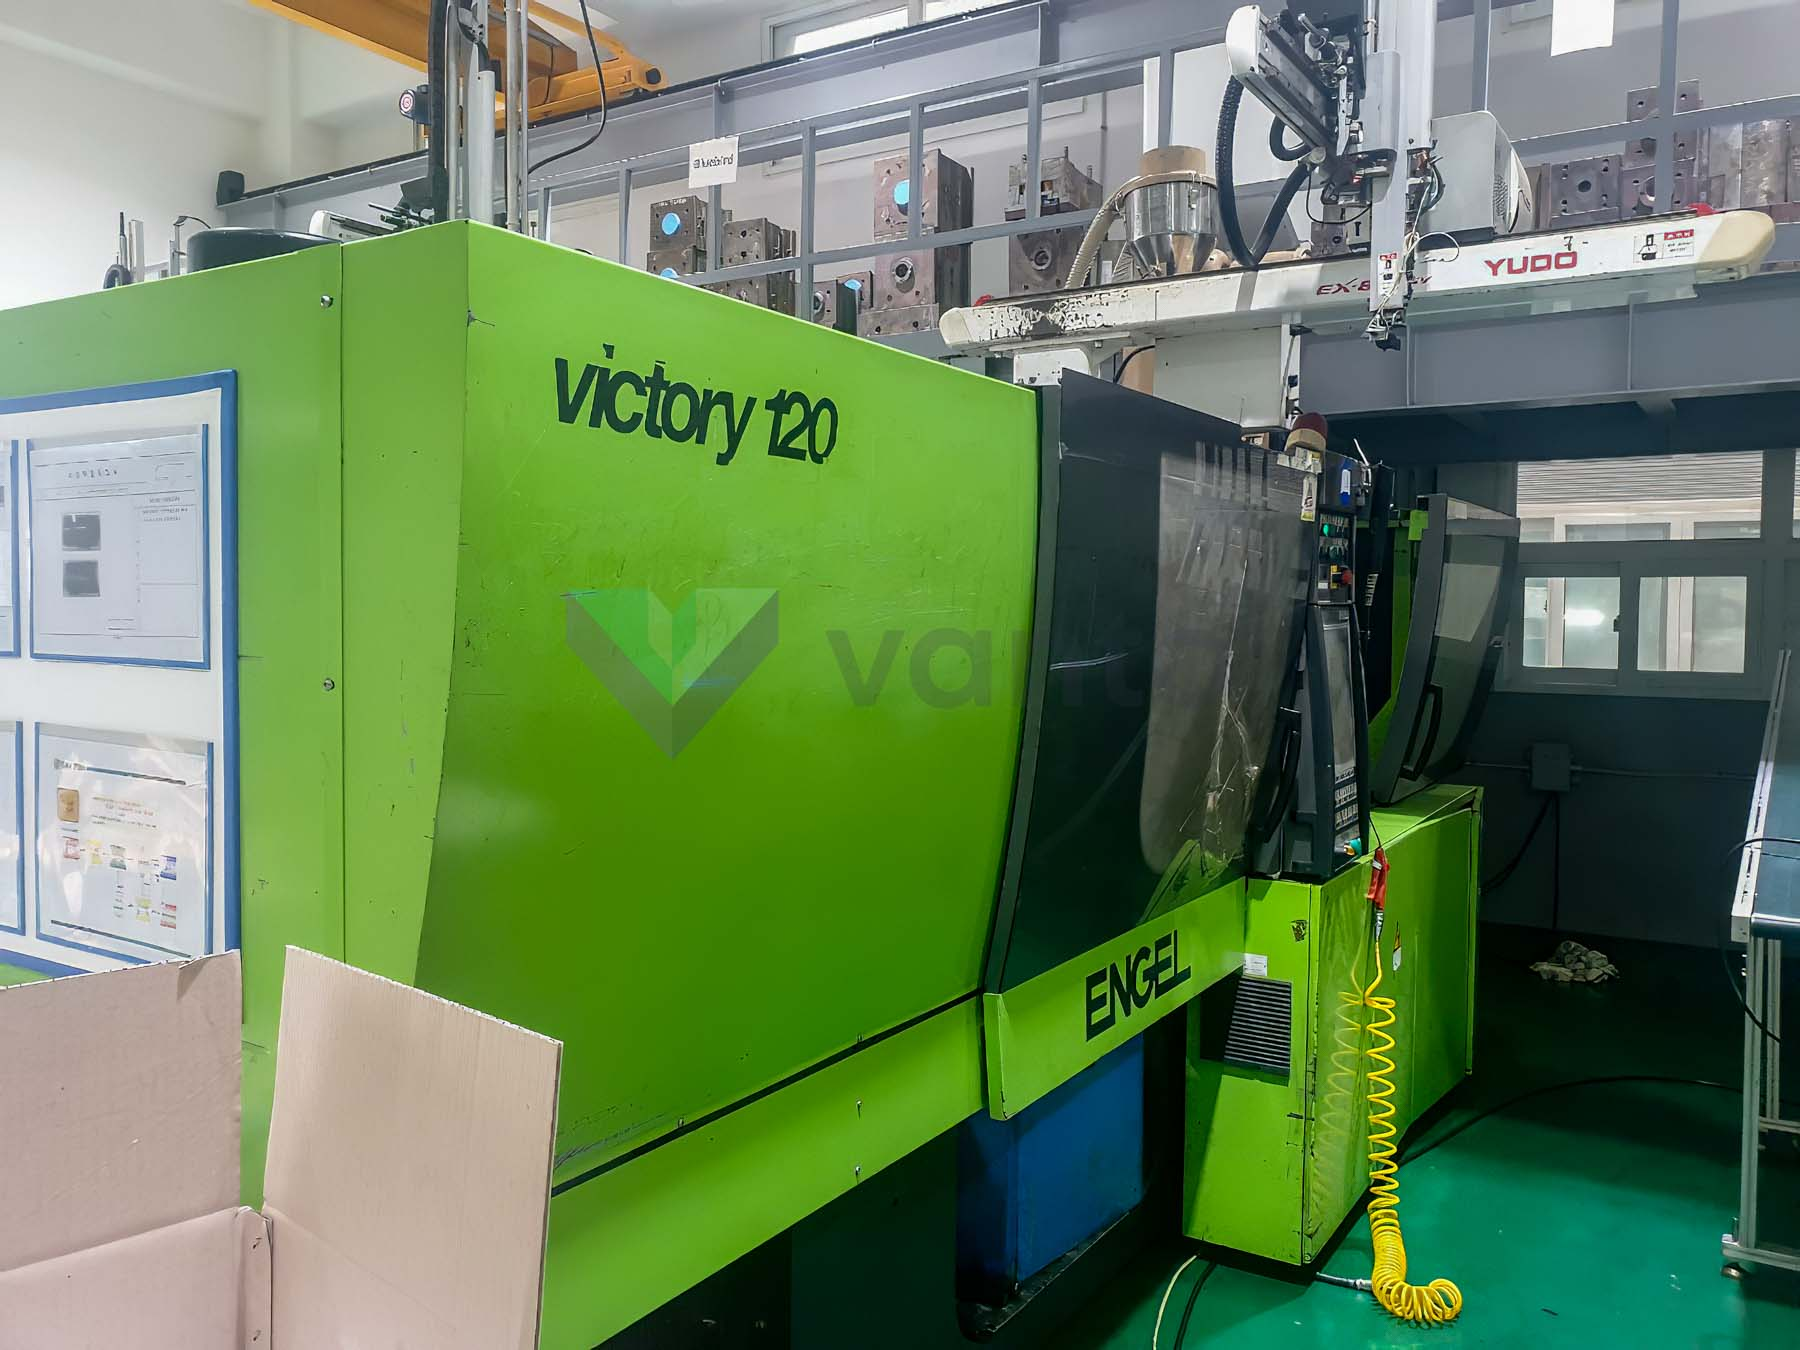 Machine de moulage par injection 120t ENGEL VICTORY VC 200 / 120 TECH PRO (2009) id10380